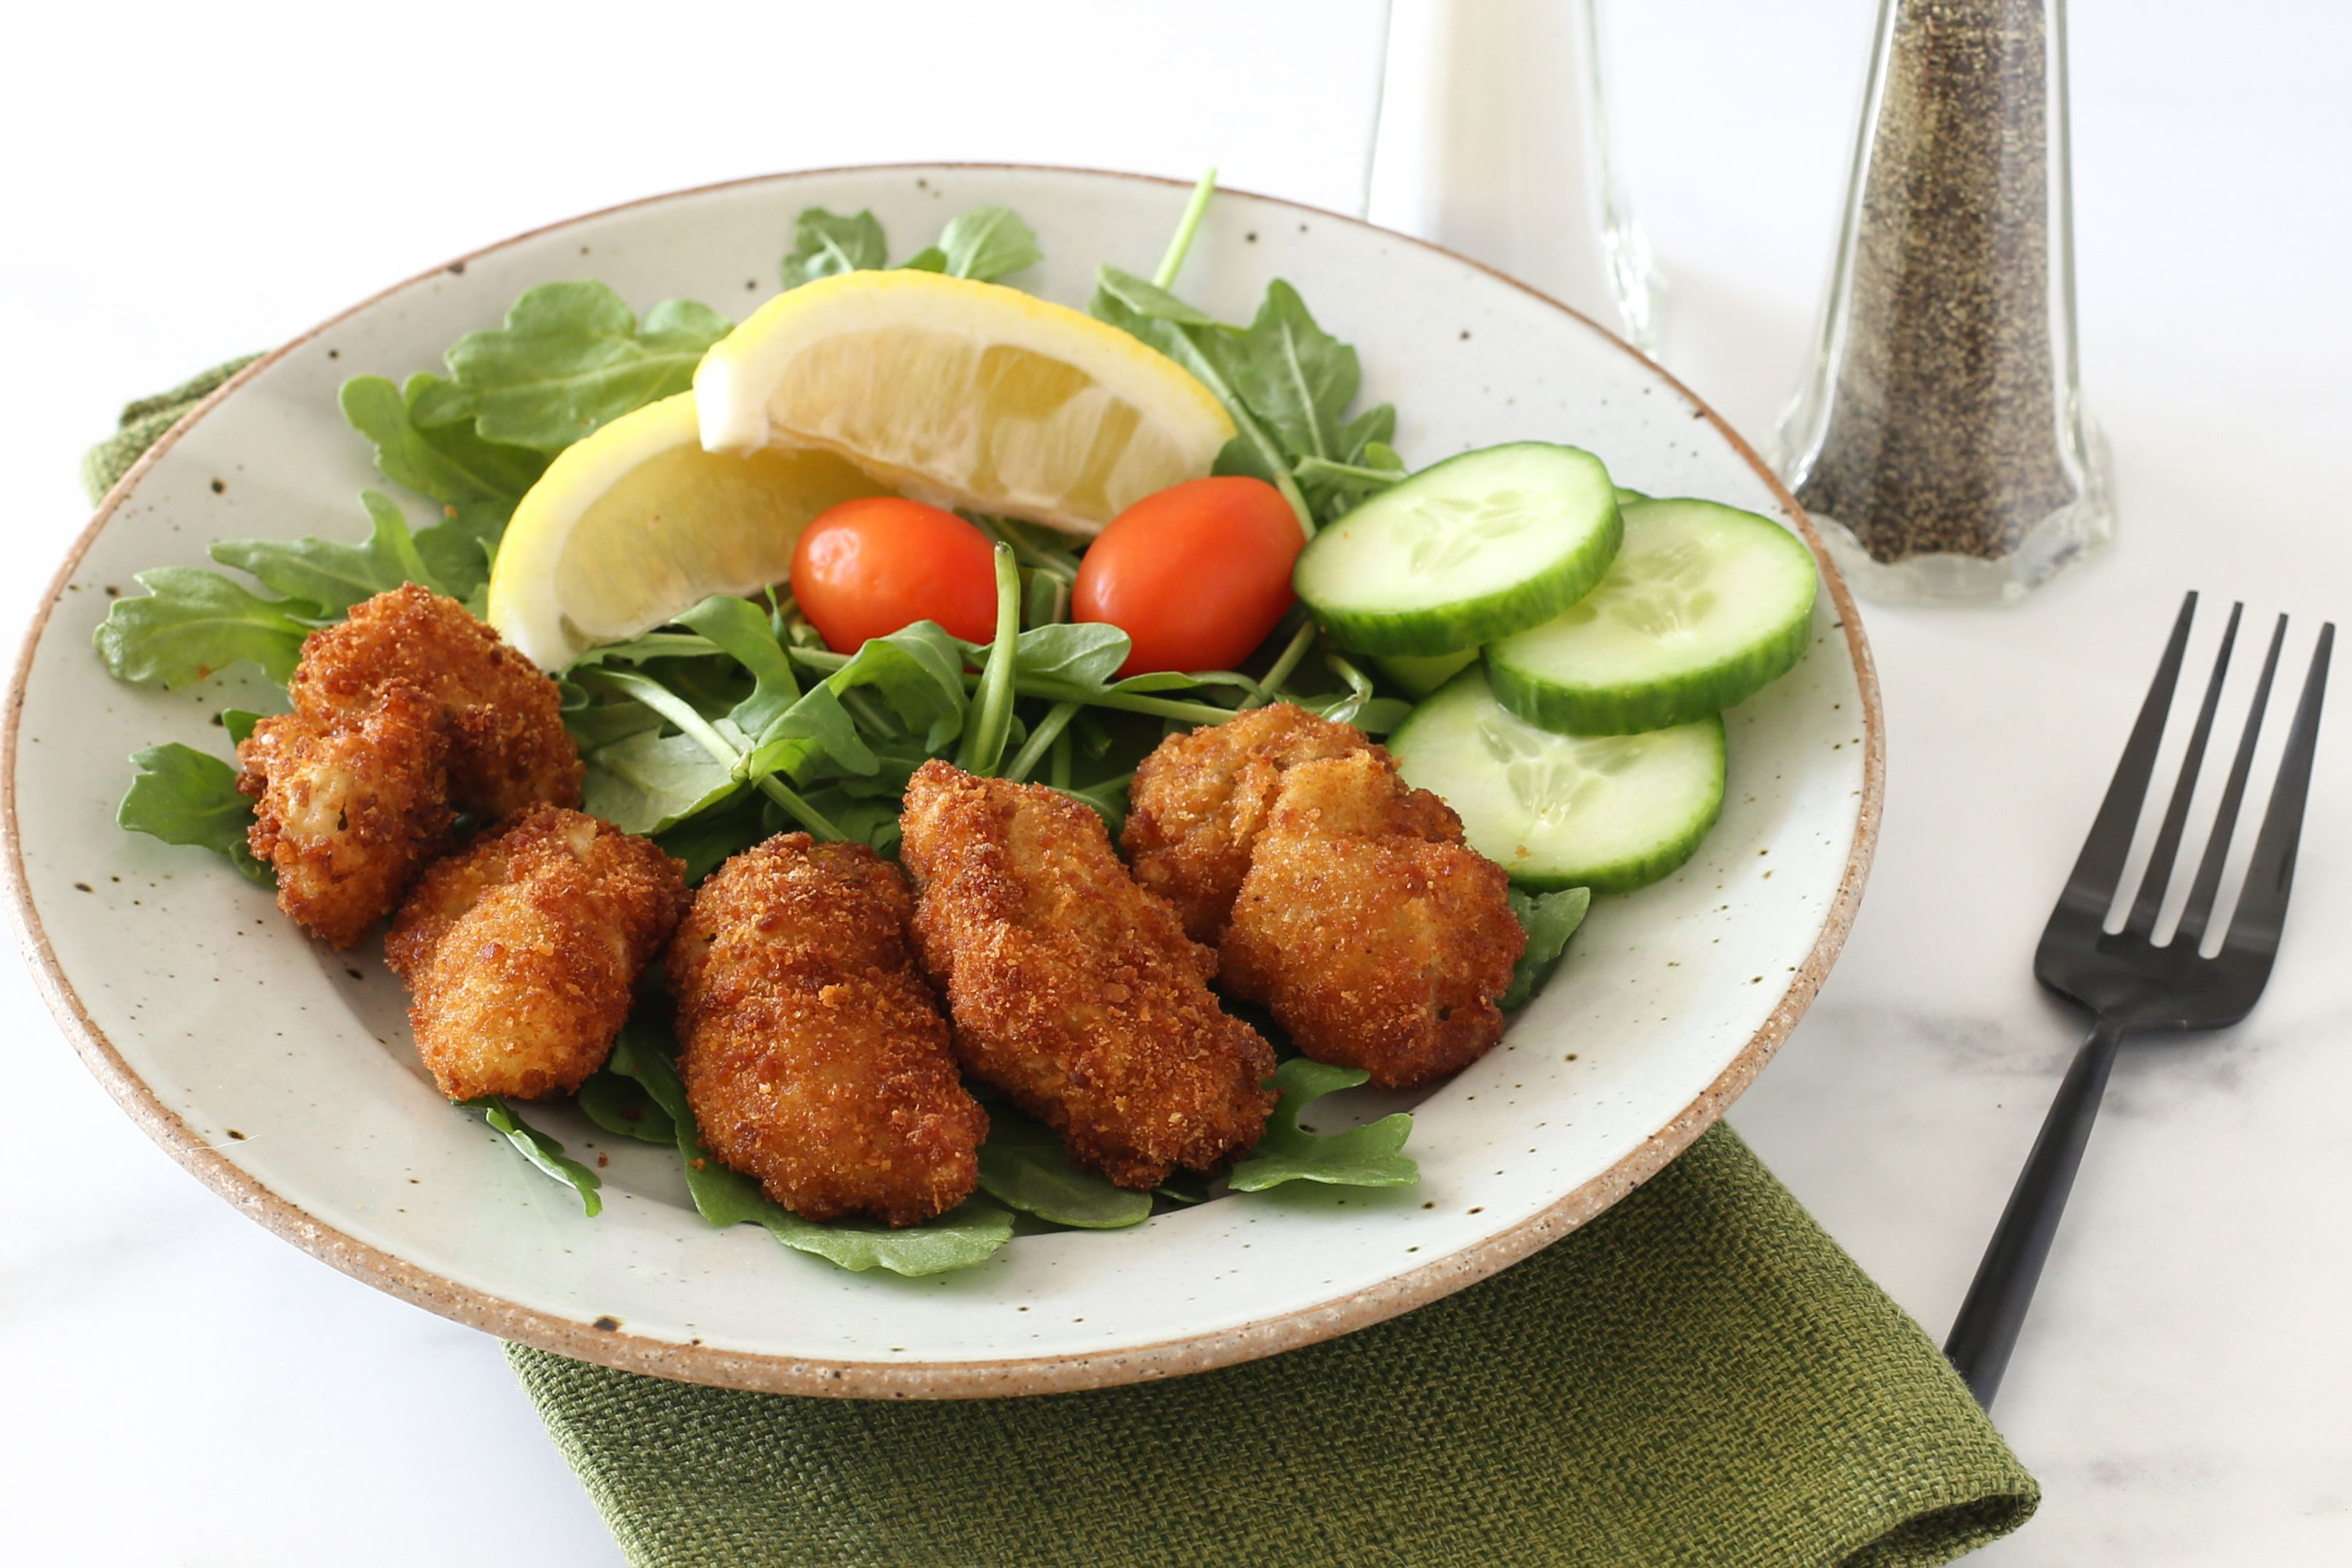 Southern style fried oysters